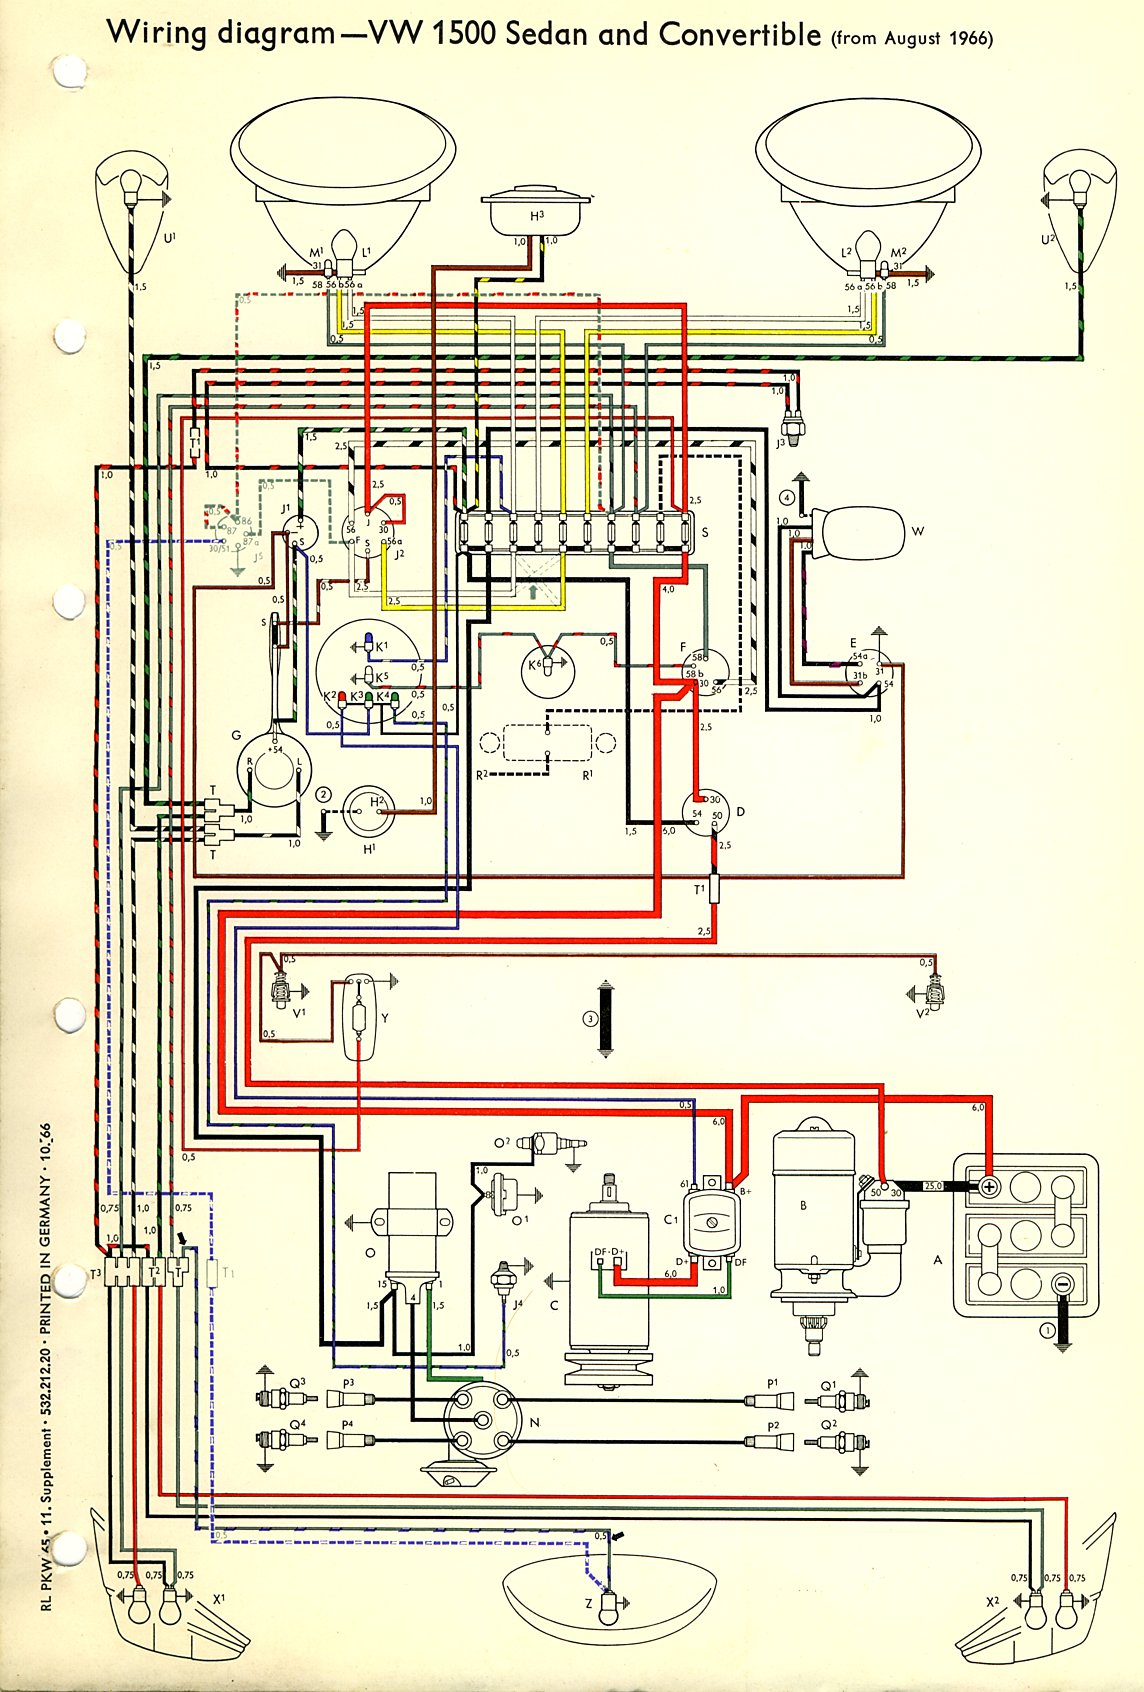 1975 Datsun Alternator Wiring Diagram Furthermore 280z Bug Schematics Data U2022 Rh Case Hub Co